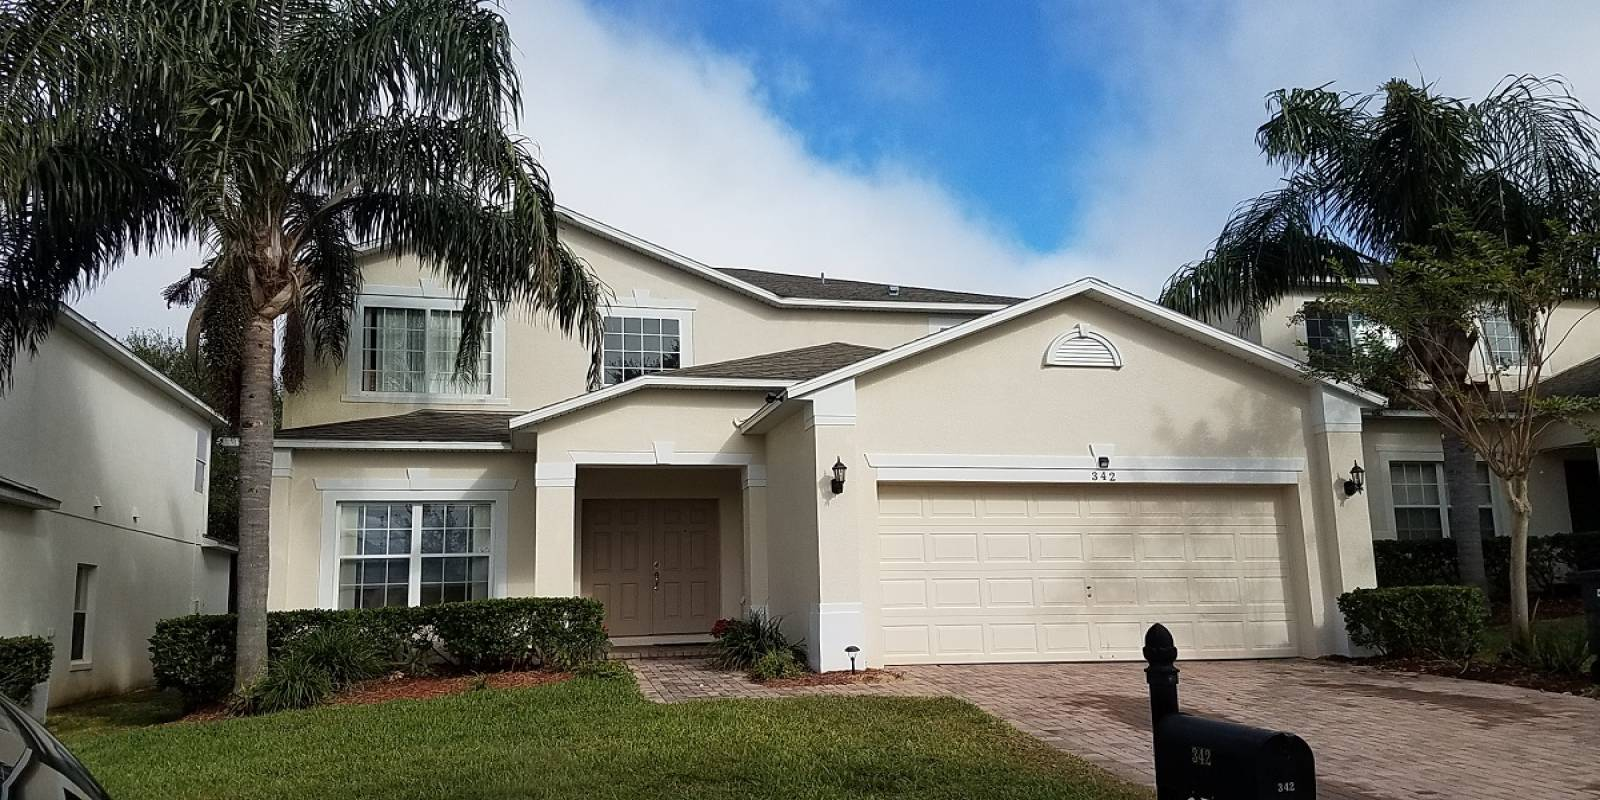 Davenport, Florida 33897, 5 Bedrooms Bedrooms, ,3 BathroomsBathrooms,Residential lease,For Rent,38454